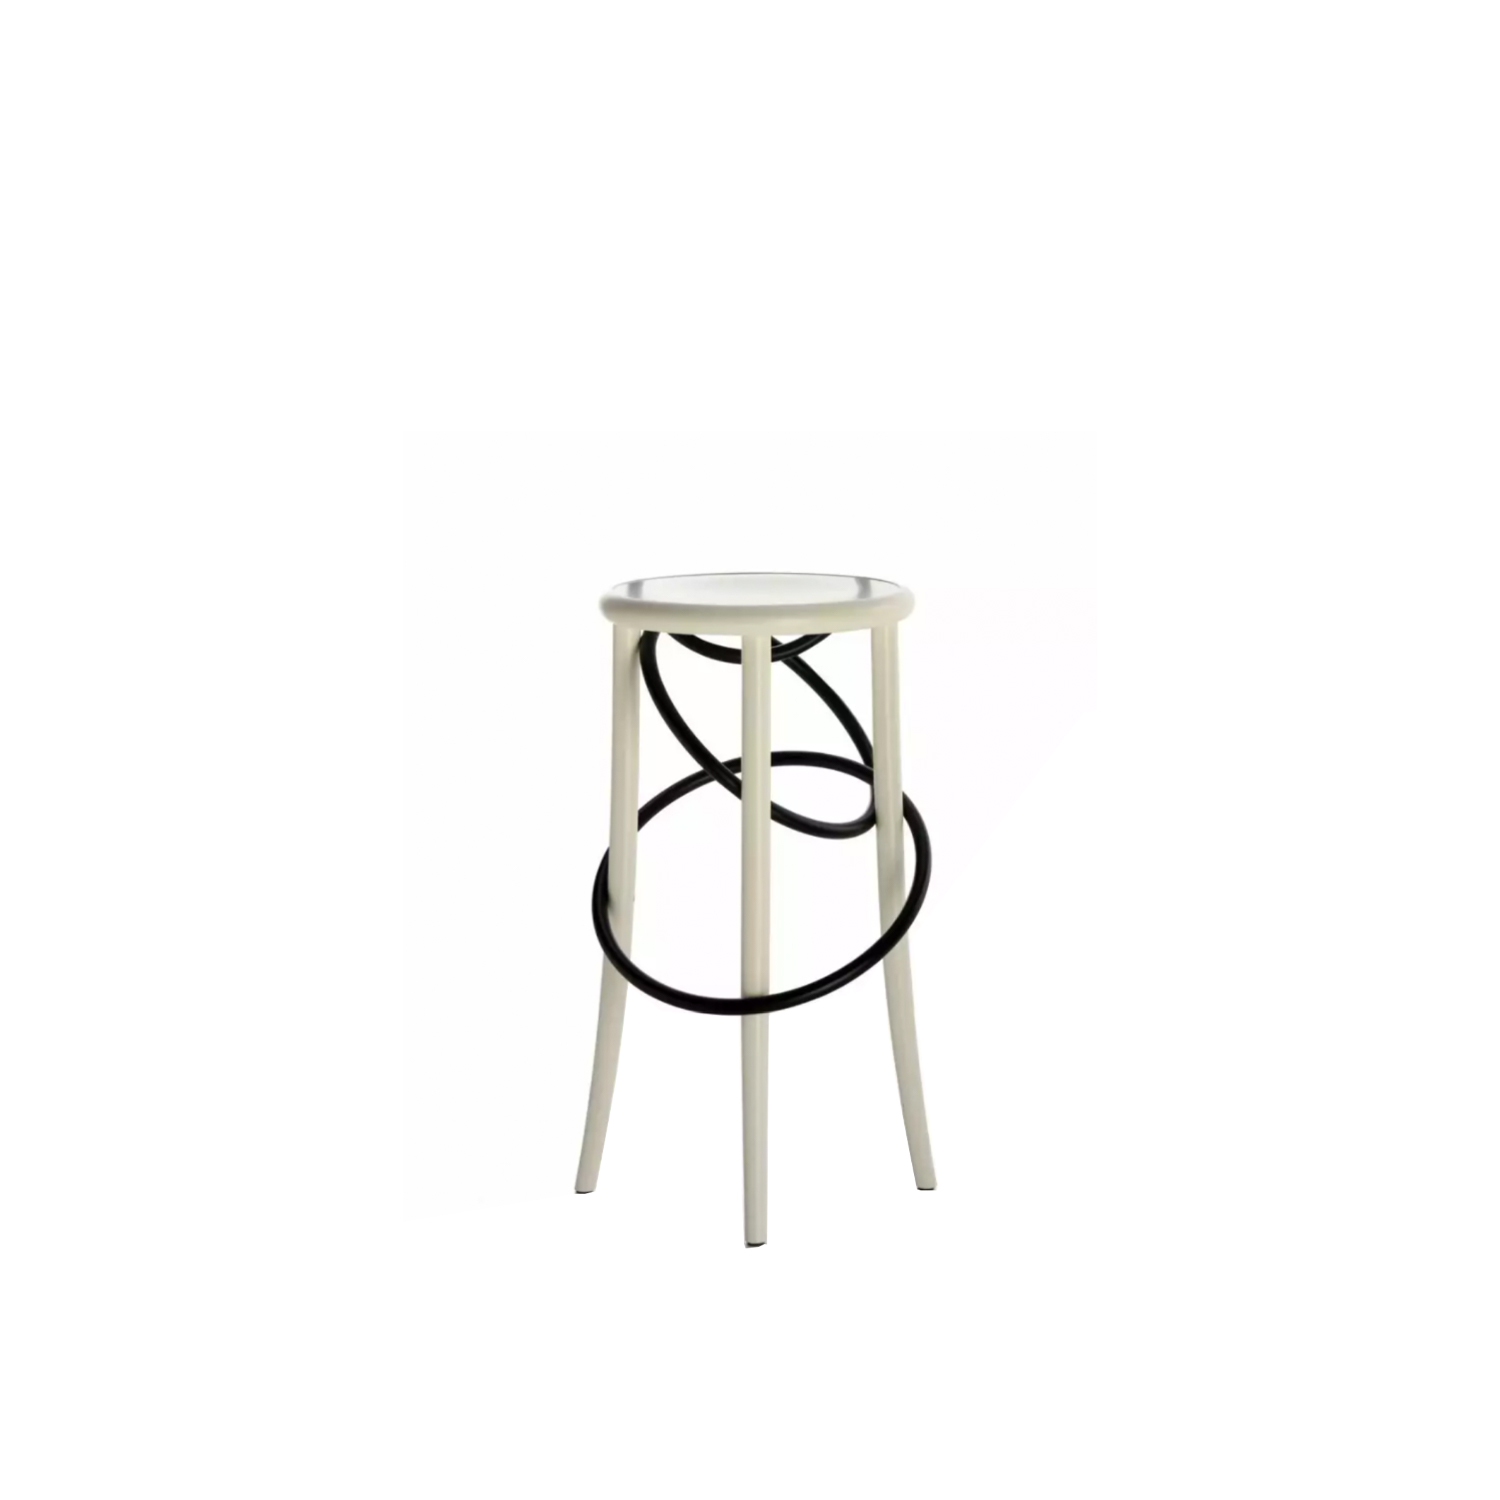 Cirque Two Tone Stool - The light and playful circus theme is at the core of the Cirque family of stools designed by Martino Gamper for Wiener GTV Design. The bent element, which is the brand's signature trait, is surprisingly and unexpectedly inserted in the base of the stool, forming the outline of the seat in the form of a chain comprising two or three wooden rings that loop around the full length of the stool legs. This striking styling effect blends in seamlessly with the functionality of the seat, which is available in two heights: a tall, sleek stool with or without backrest, Cirque L and Cirque M, and the stable and well-proportioned low stool, Cirque S.